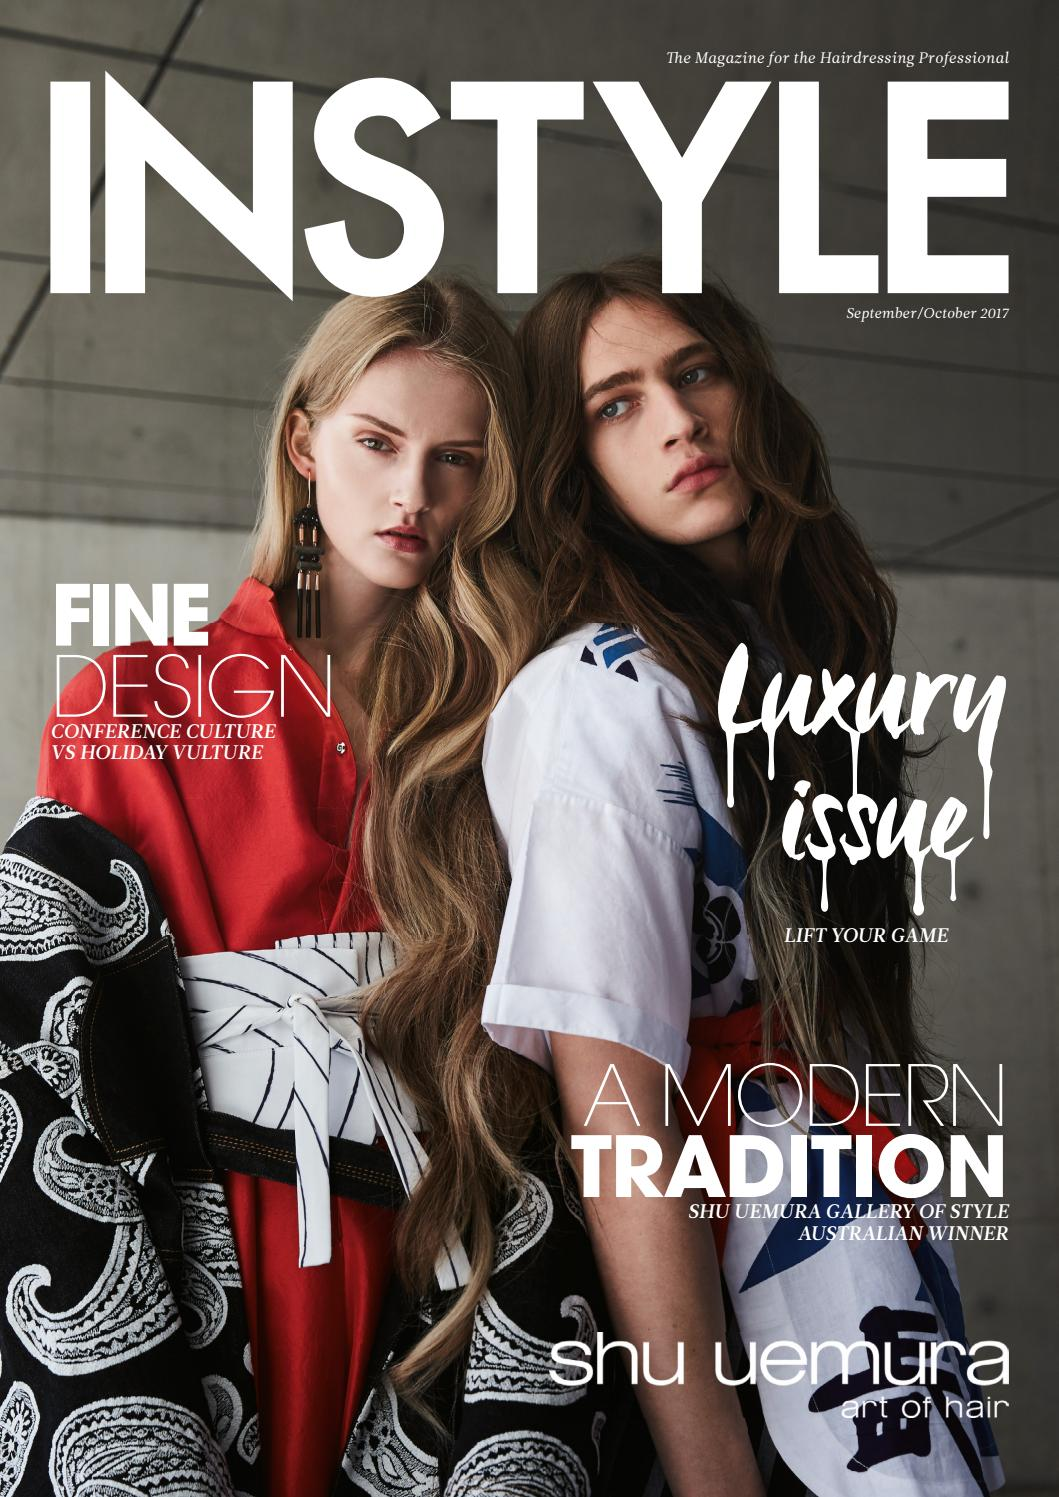 INSTYLE - September October 2017 by The Intermedia Group - issuu